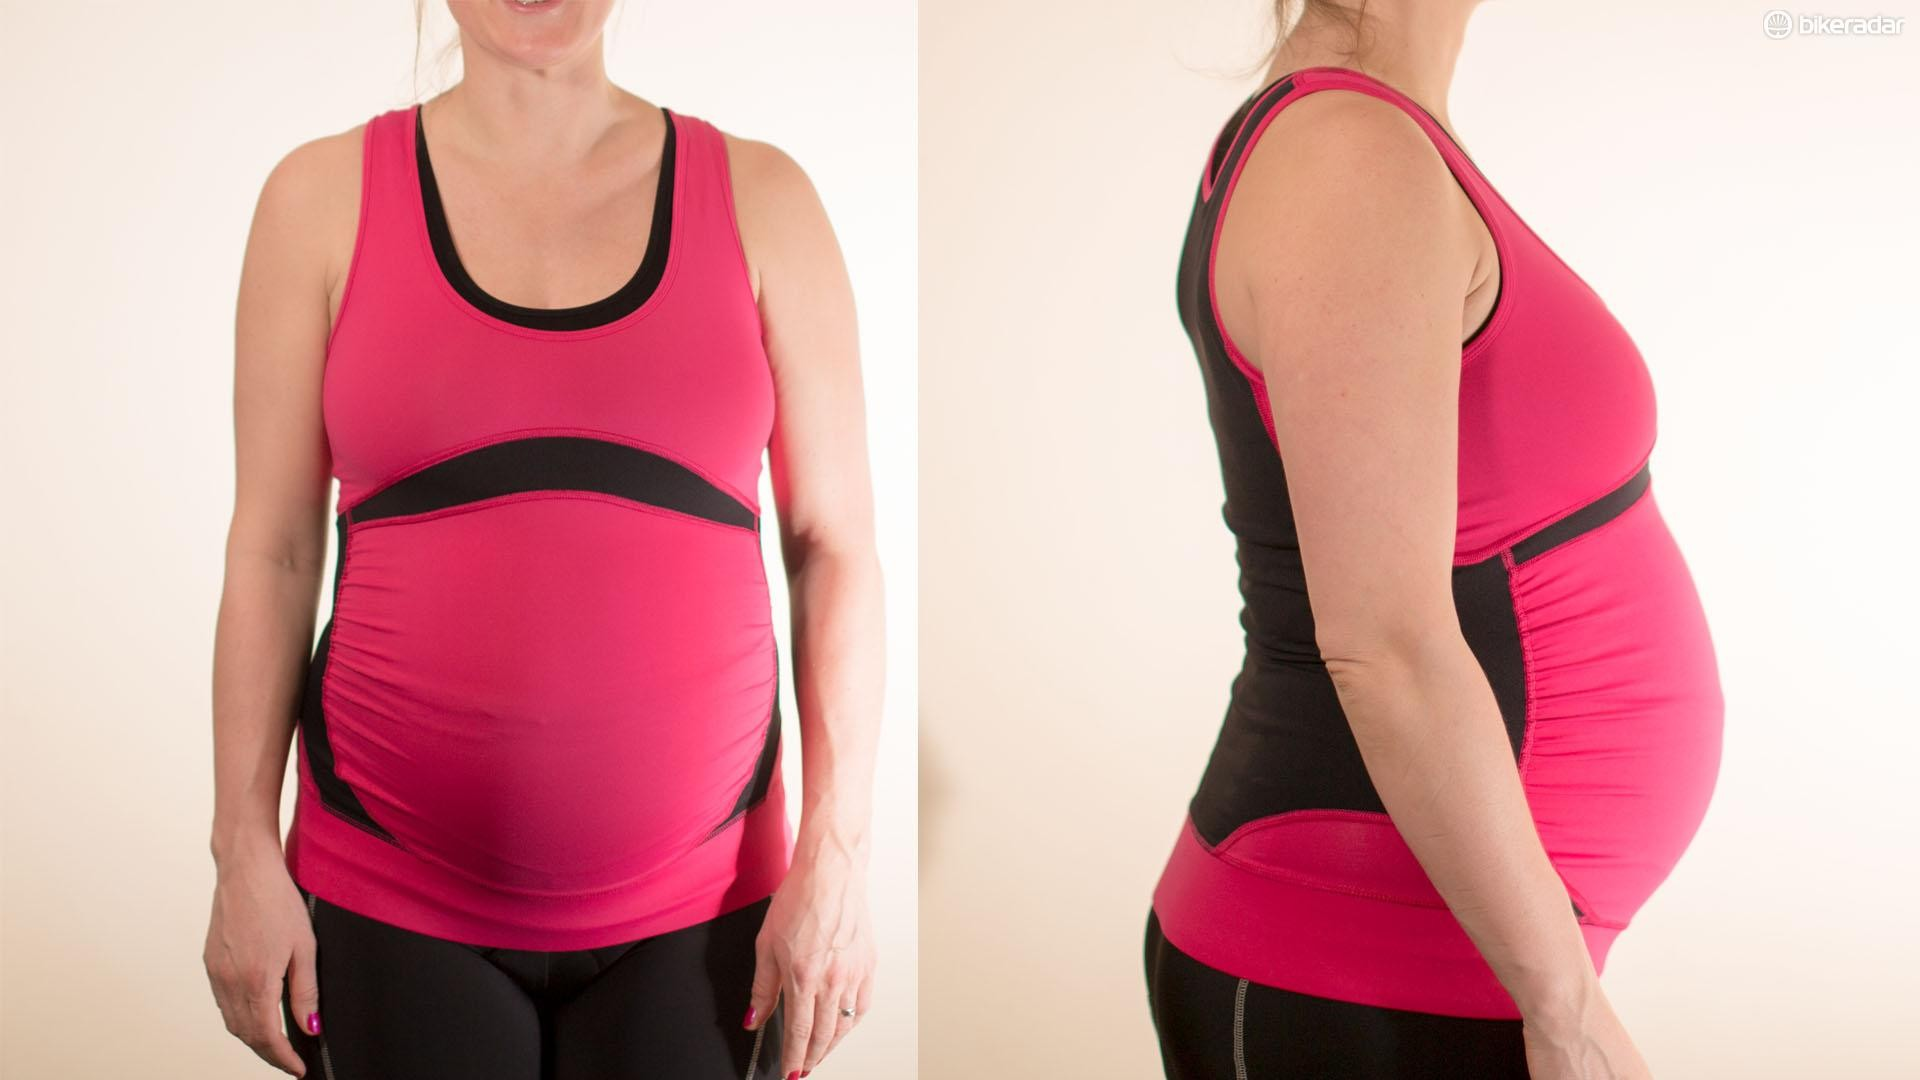 A panneled construction is designed to sit comfortably around your bump